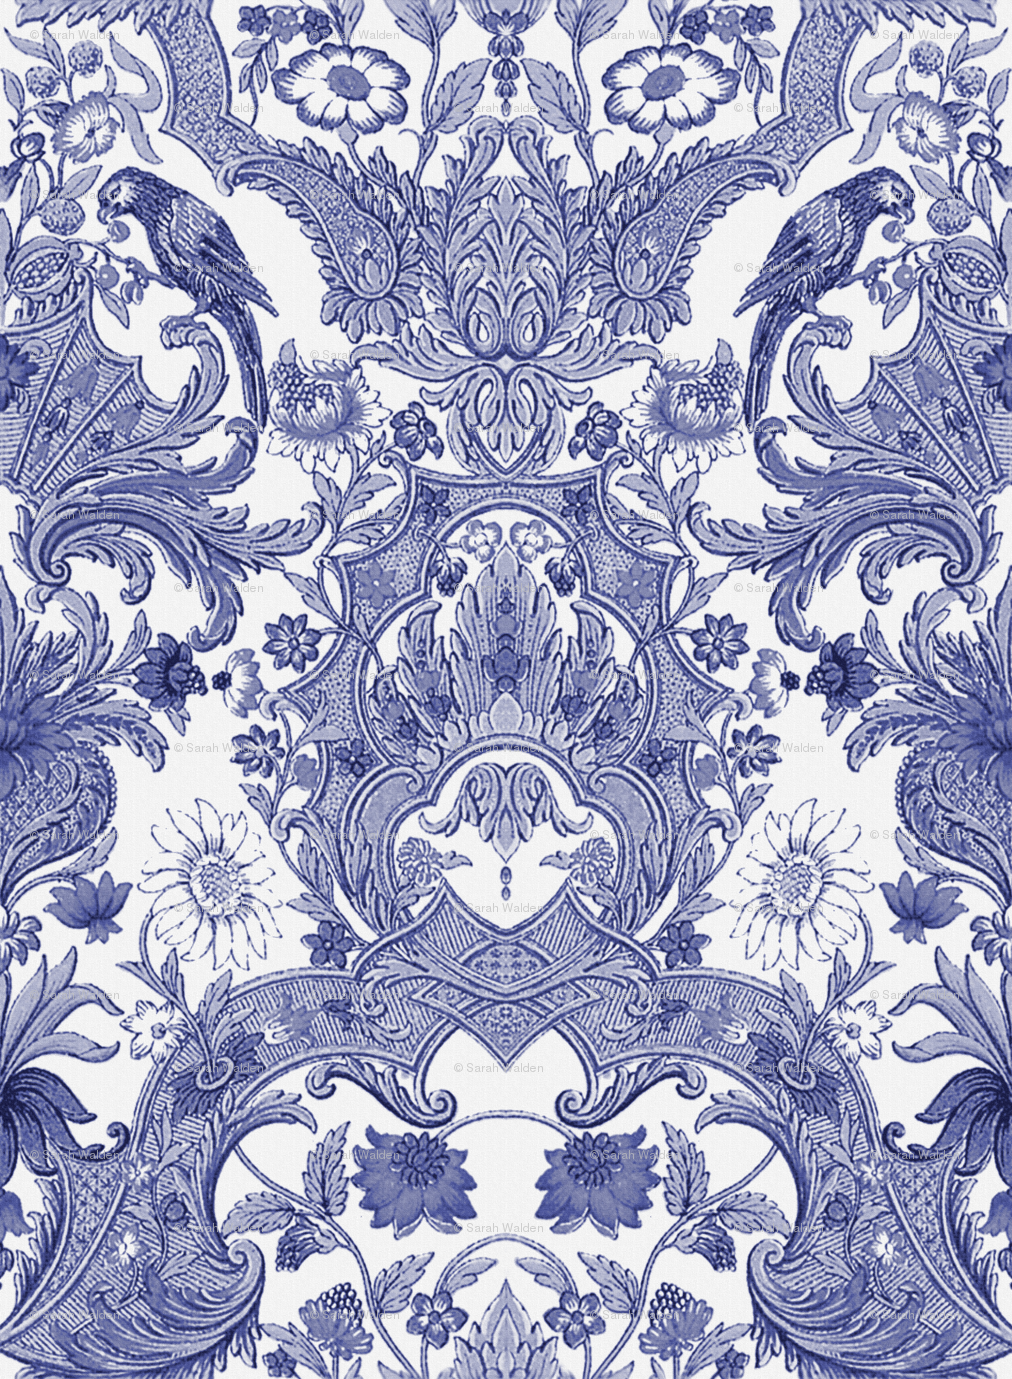 Parrot Damask Blue And White Centered Birds Giftwrap